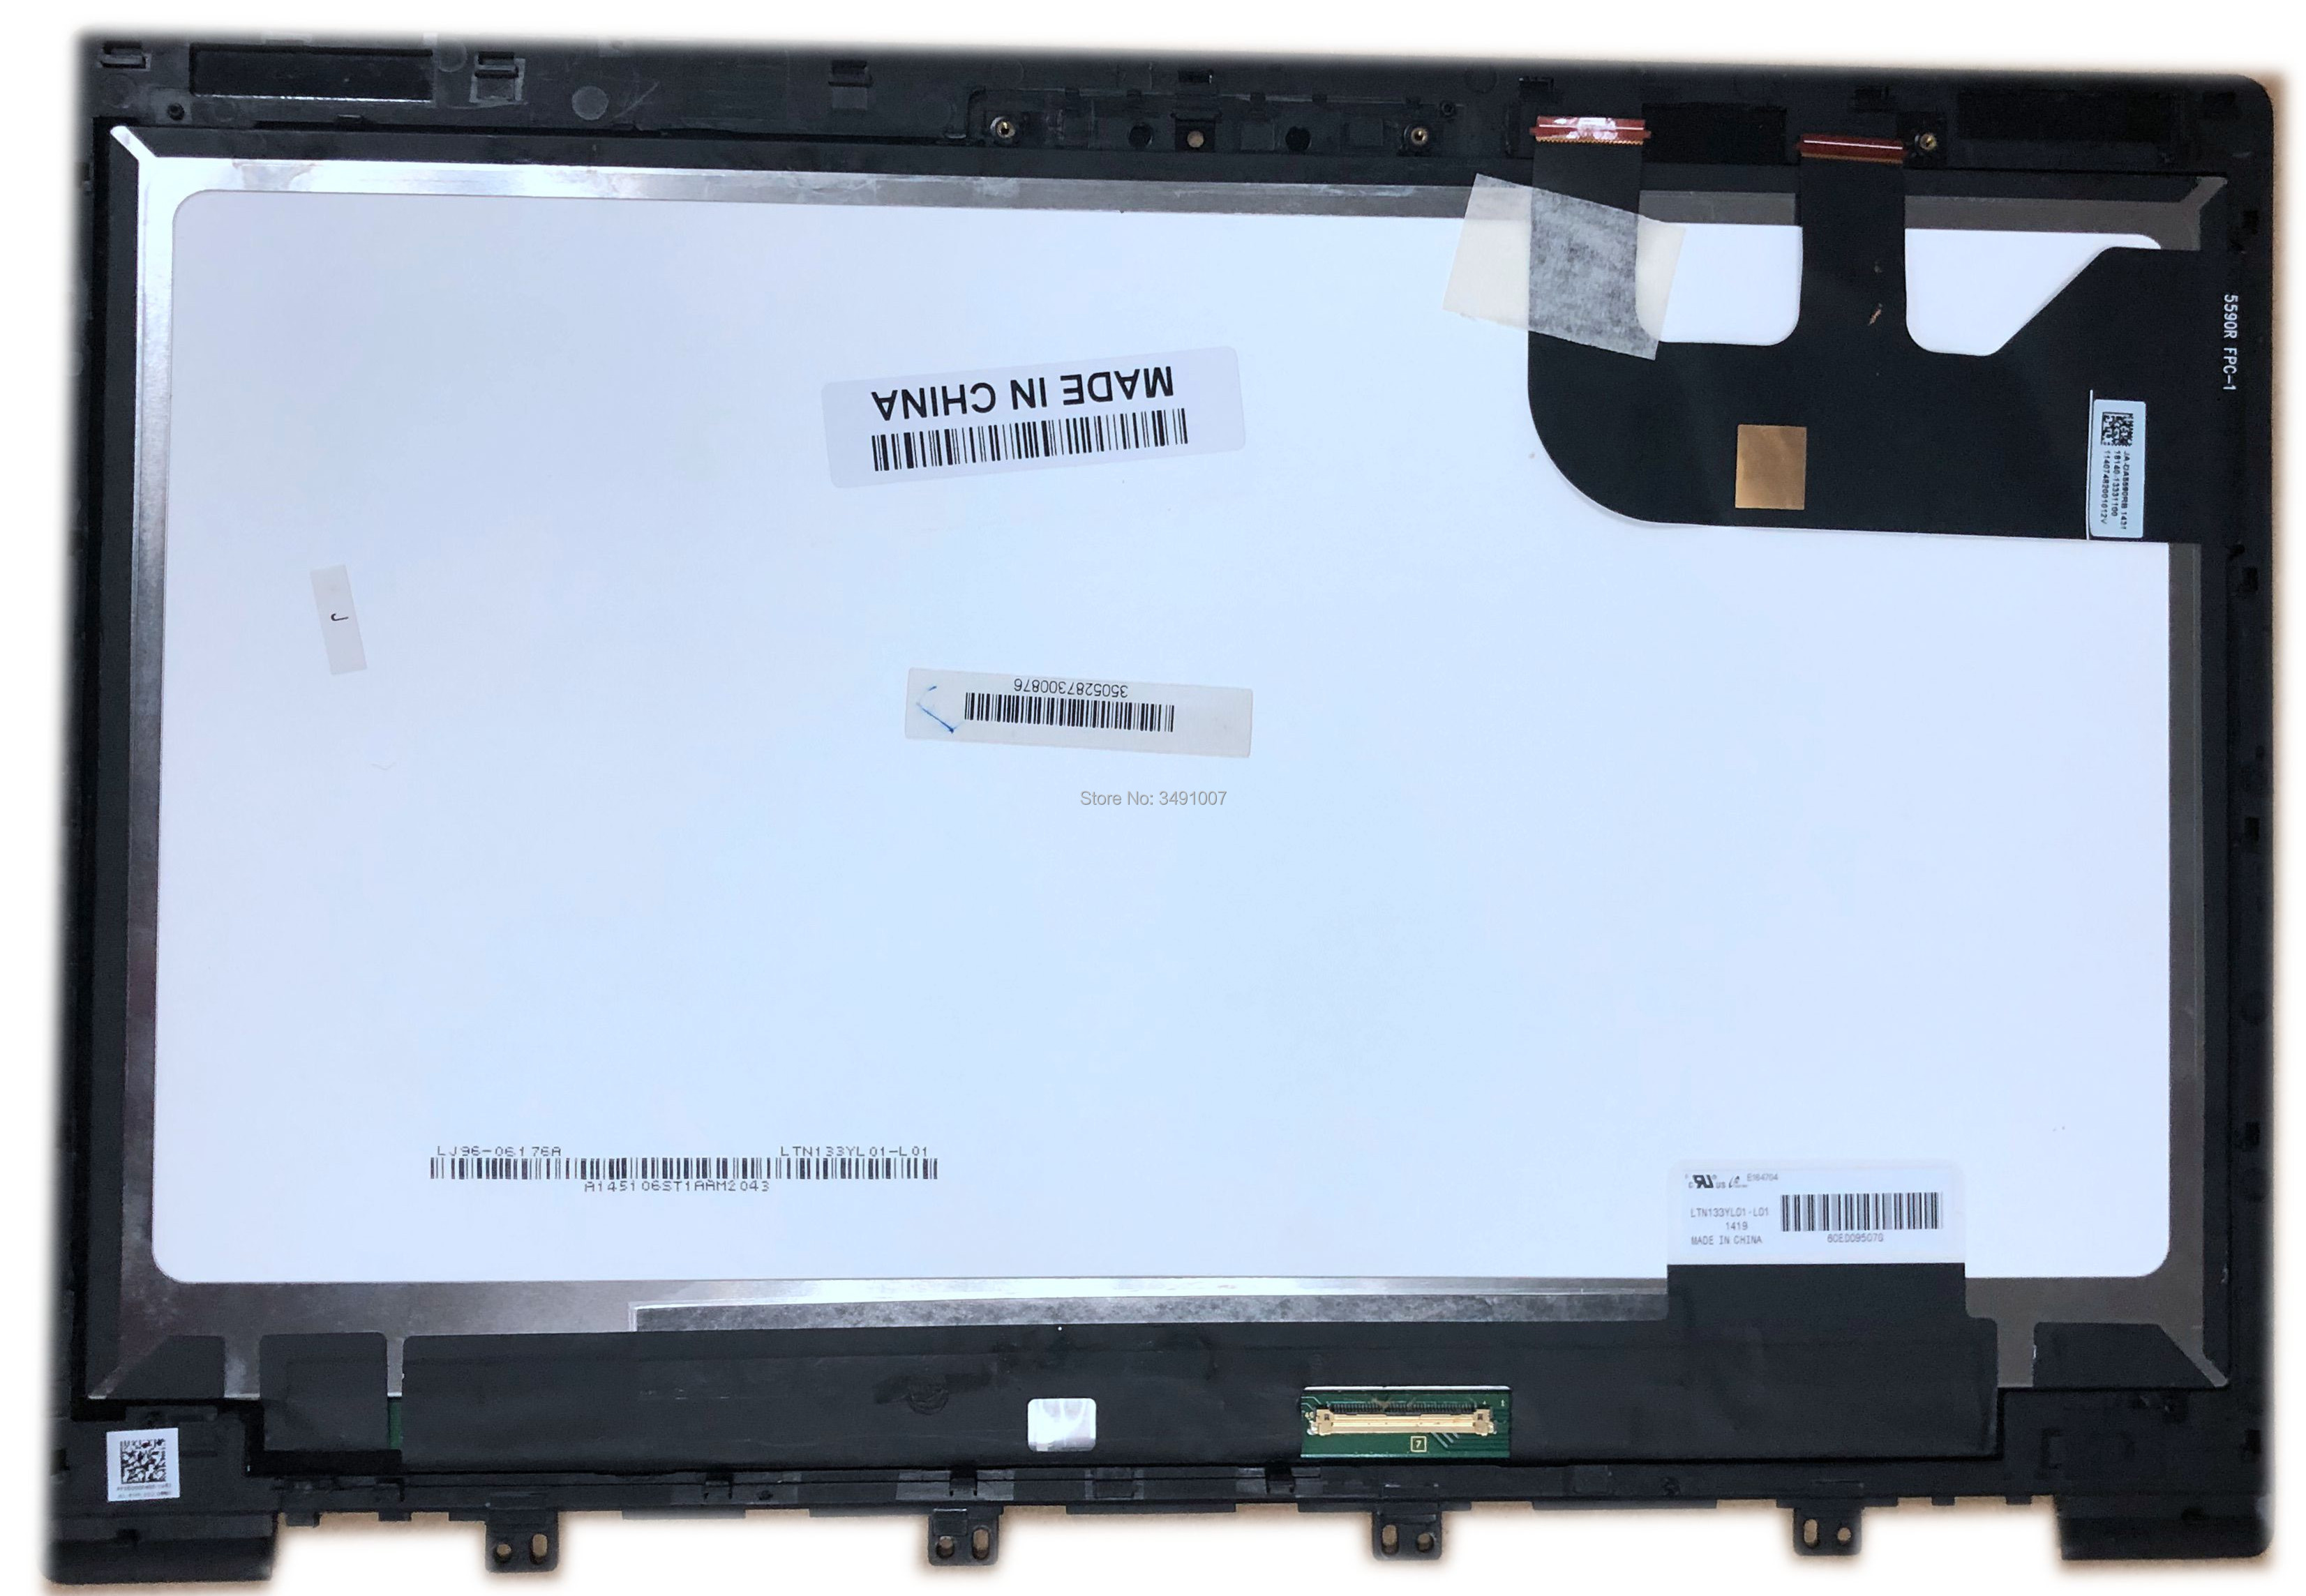 For ASUS Zenbook UX303 UX303LB  LTN133YL01 -L01 LCD Display Panel Touch Screen Assembly + Frame  133For ASUS Zenbook UX303 UX303LB  LTN133YL01 -L01 LCD Display Panel Touch Screen Assembly + Frame  133